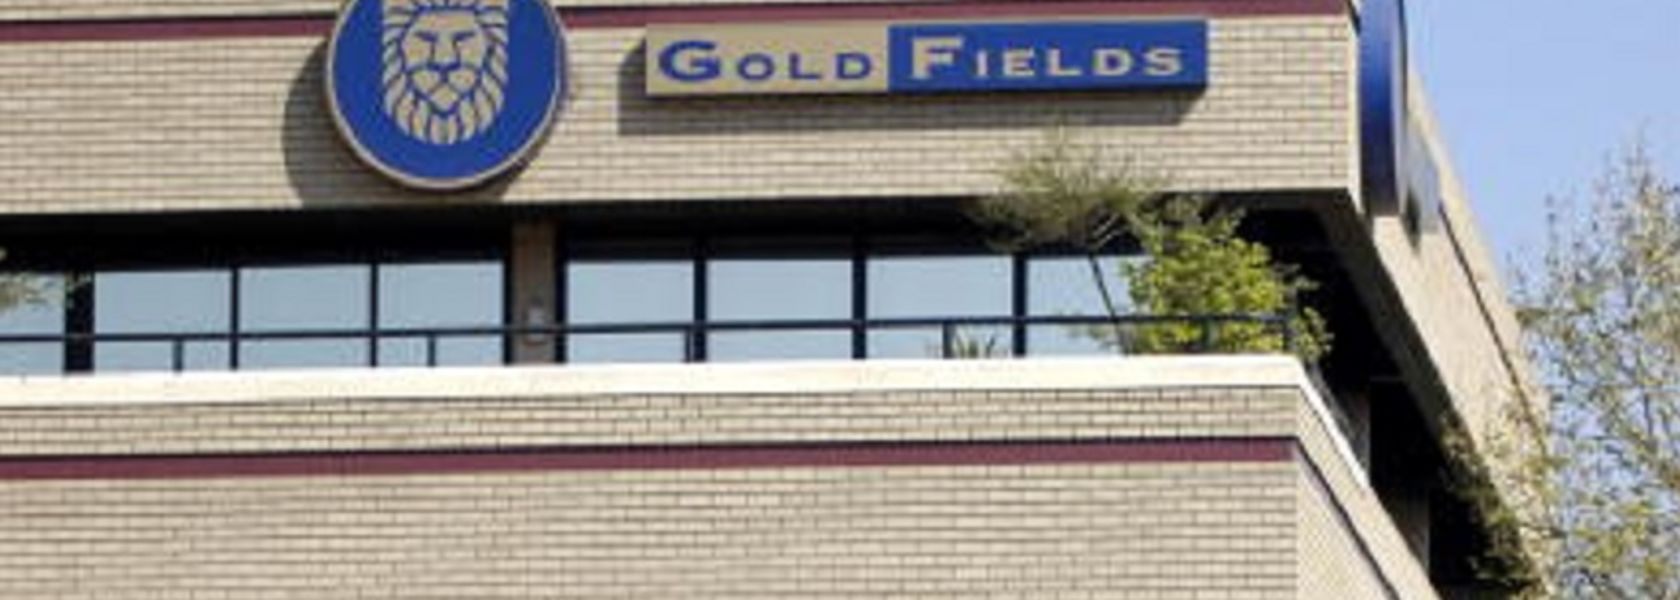 Two Gold Fields directors to retire